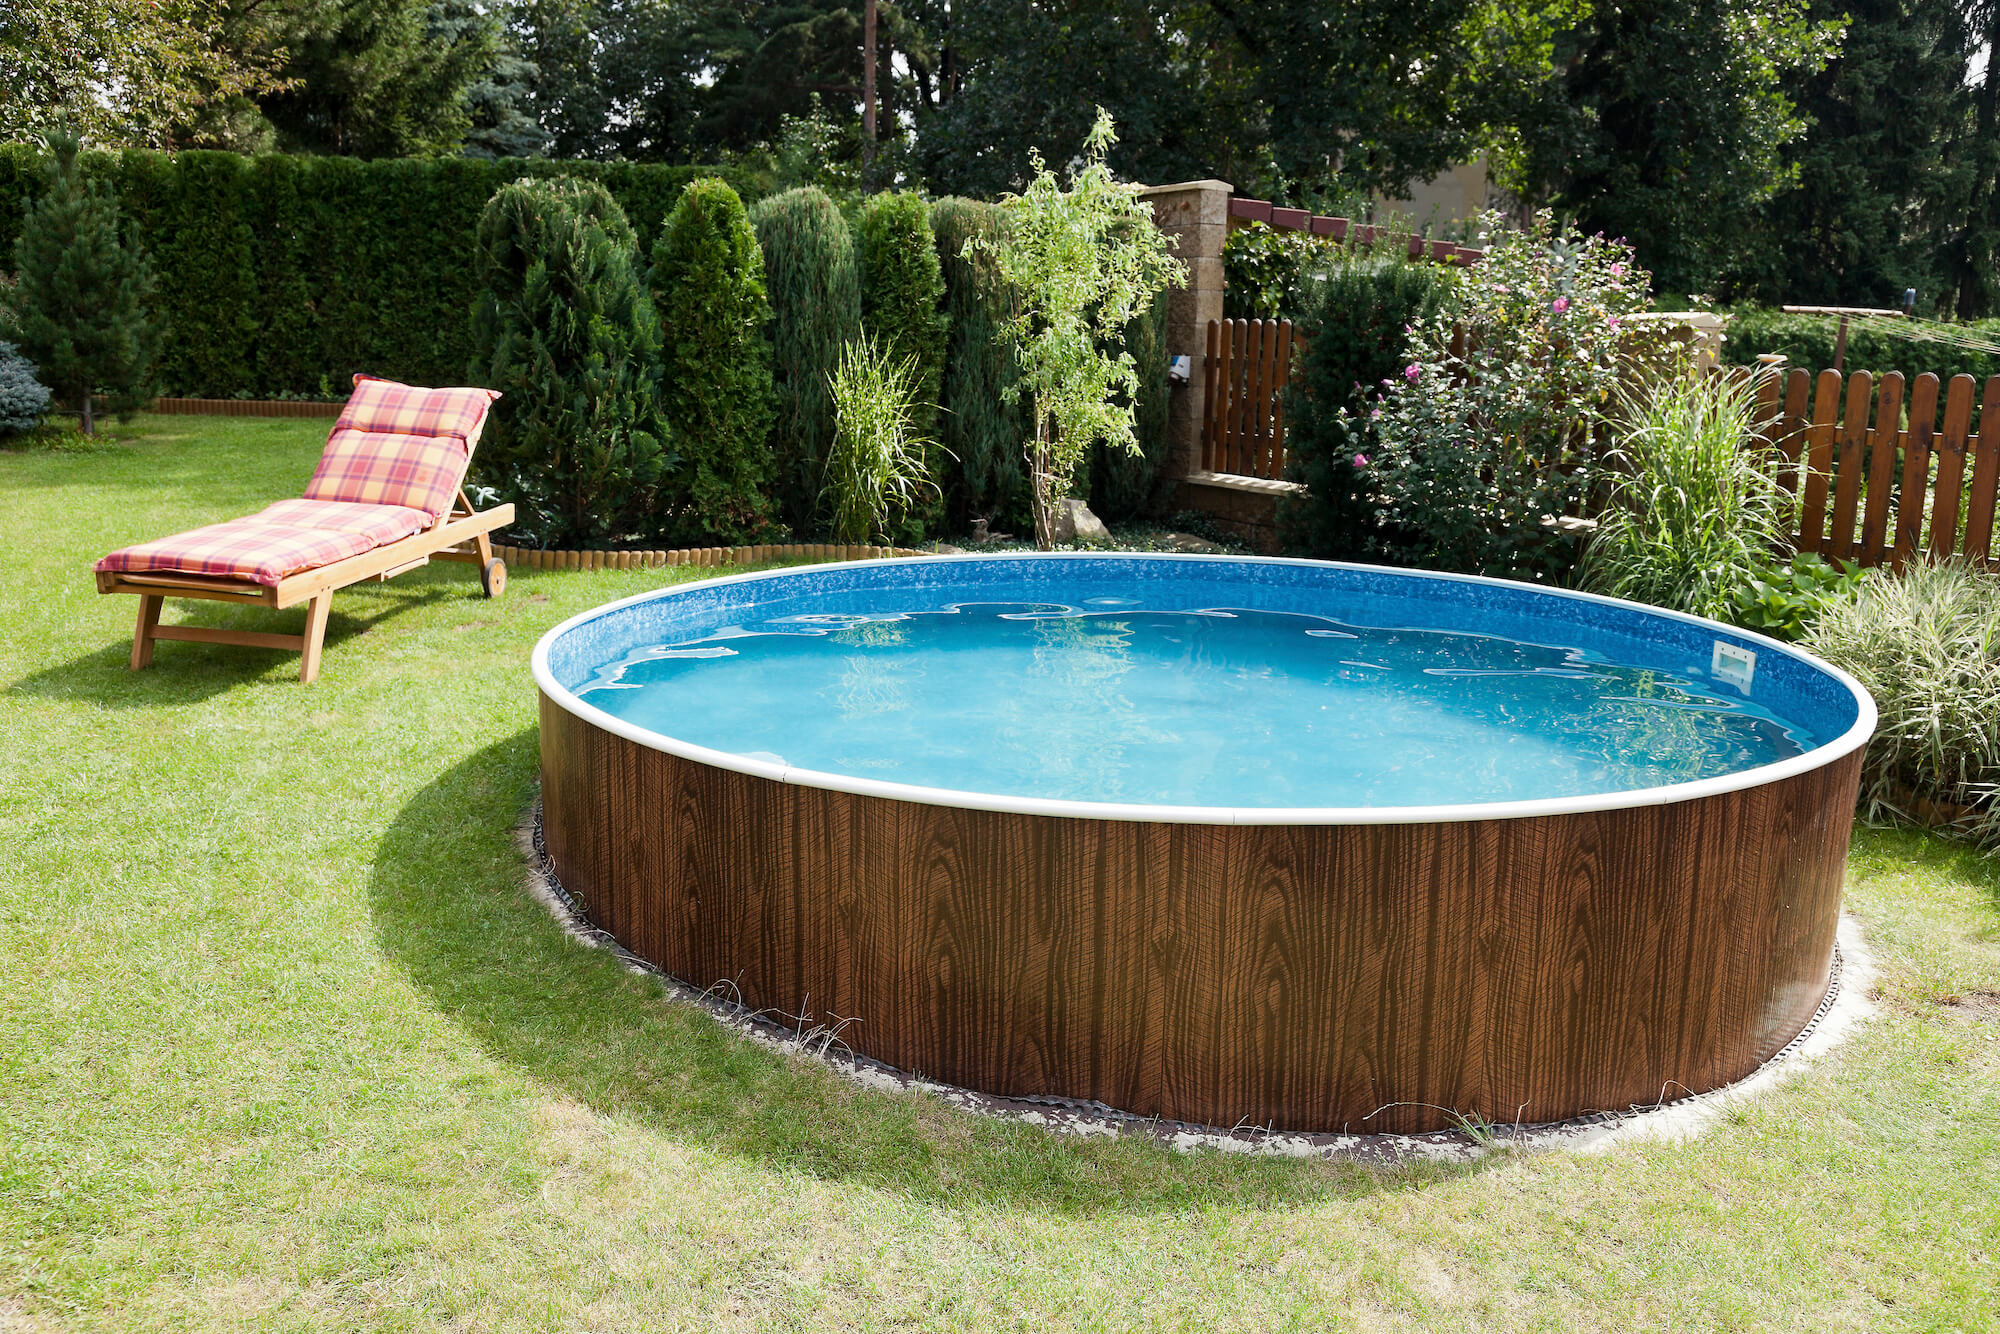 Above ground swimming pools for sale online uk 1st - Largest above ground swimming pool ...